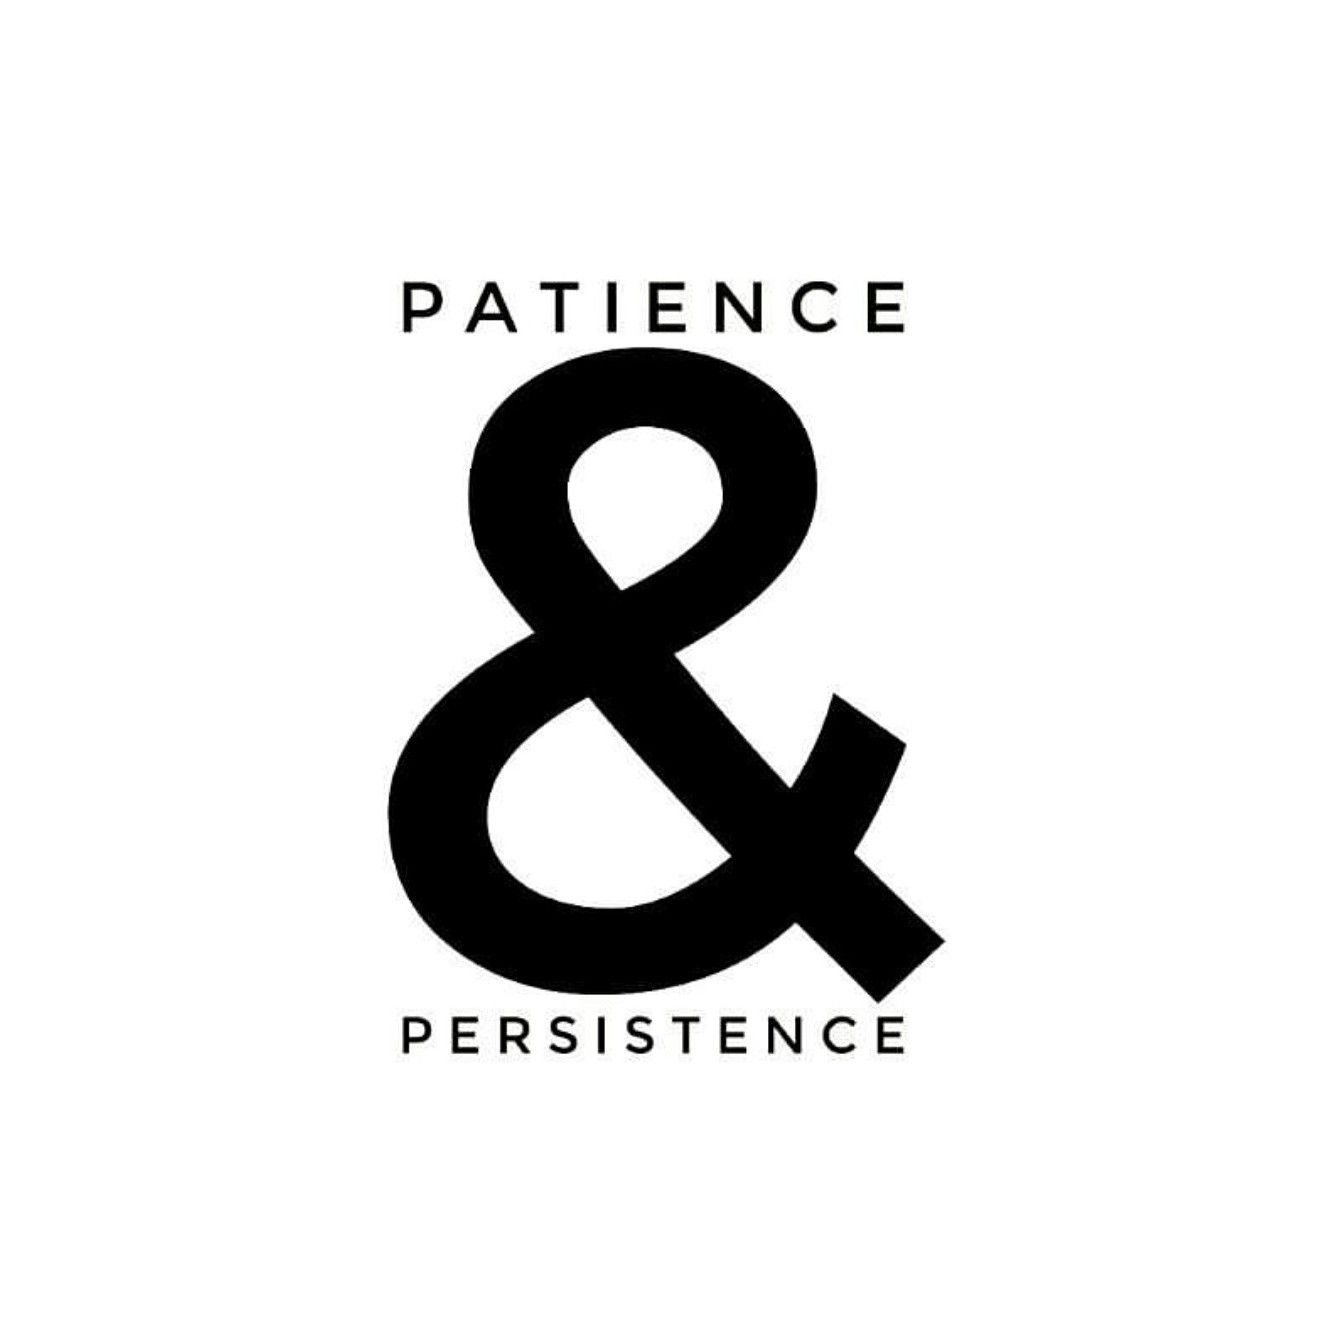 Patience and persistence Life quotes. Black and white